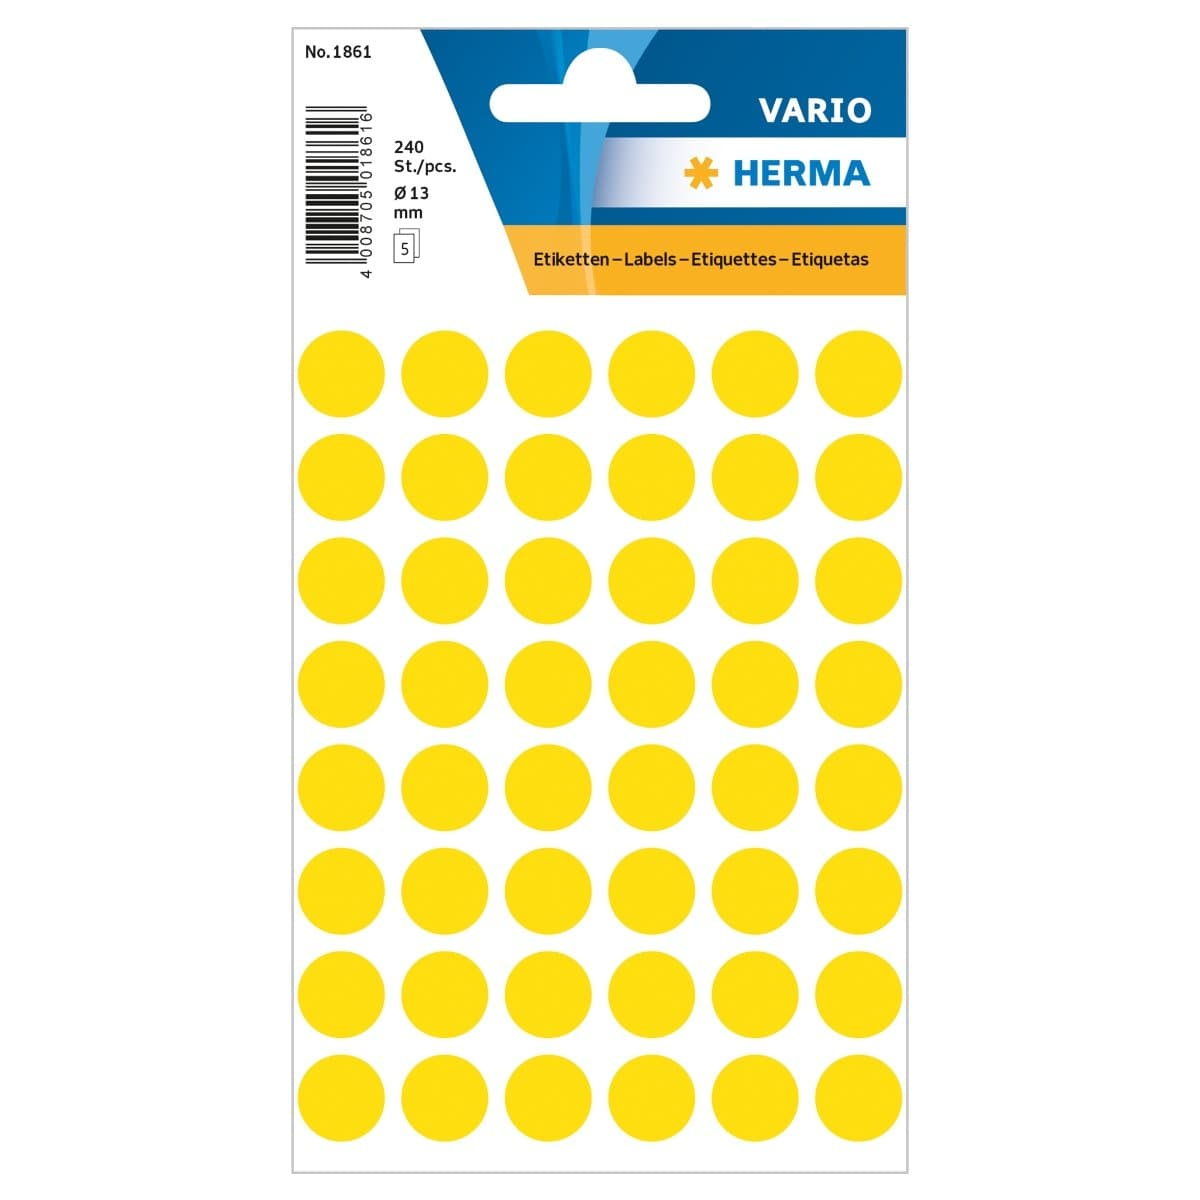 Herma Vario Sticker Color Dots, 13 mm, 240/pack, Yellow